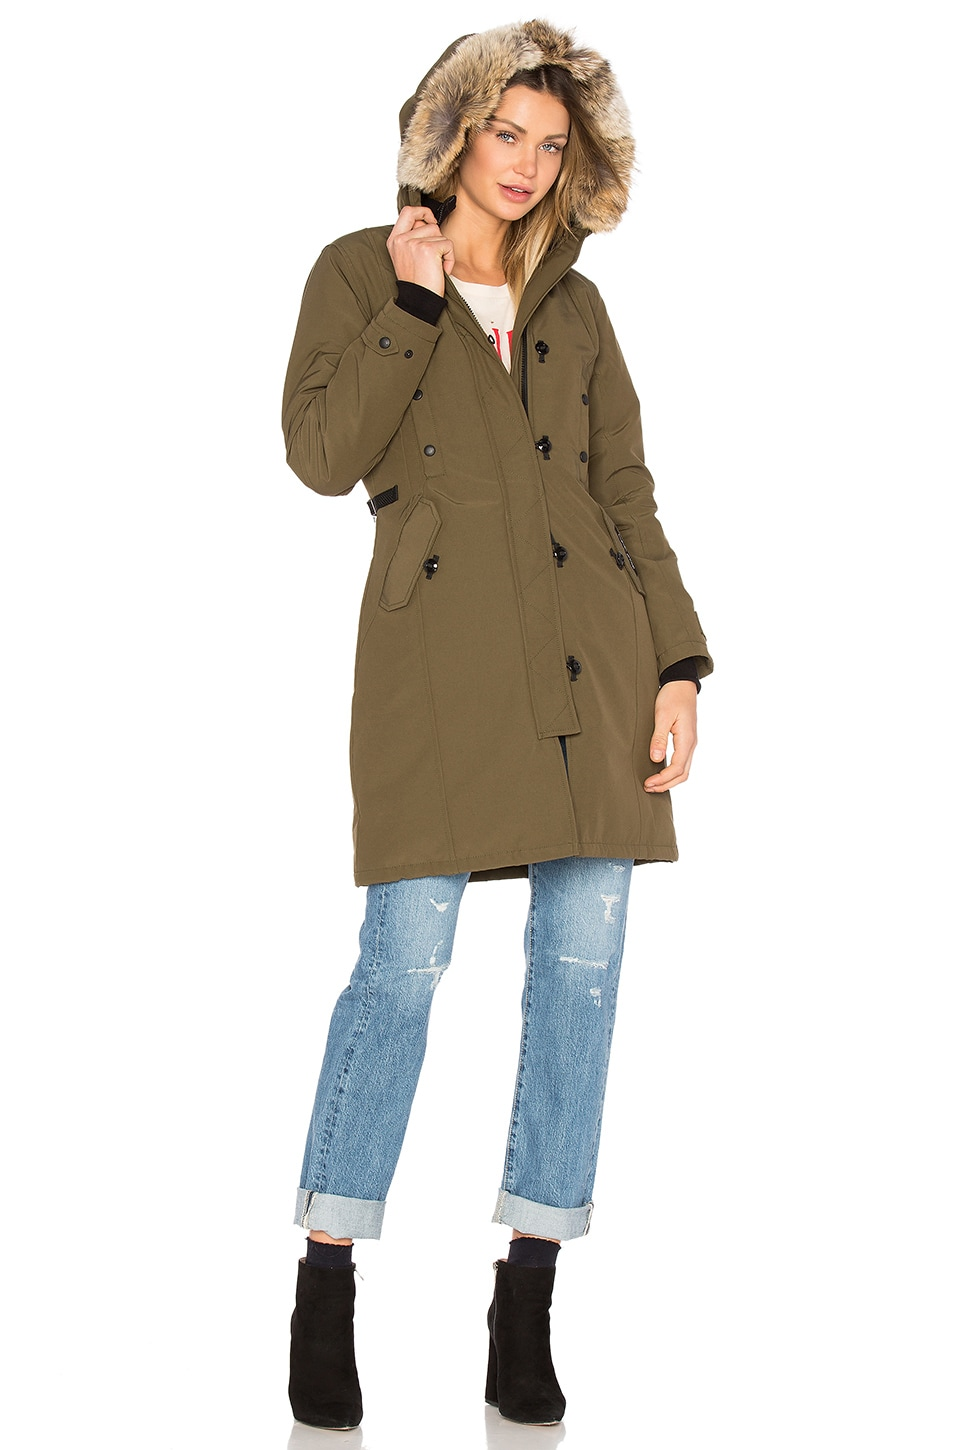 Canada Goose womens replica fake - Canada Goose Kensington Parka with Coyote Fur Trim in Military ...